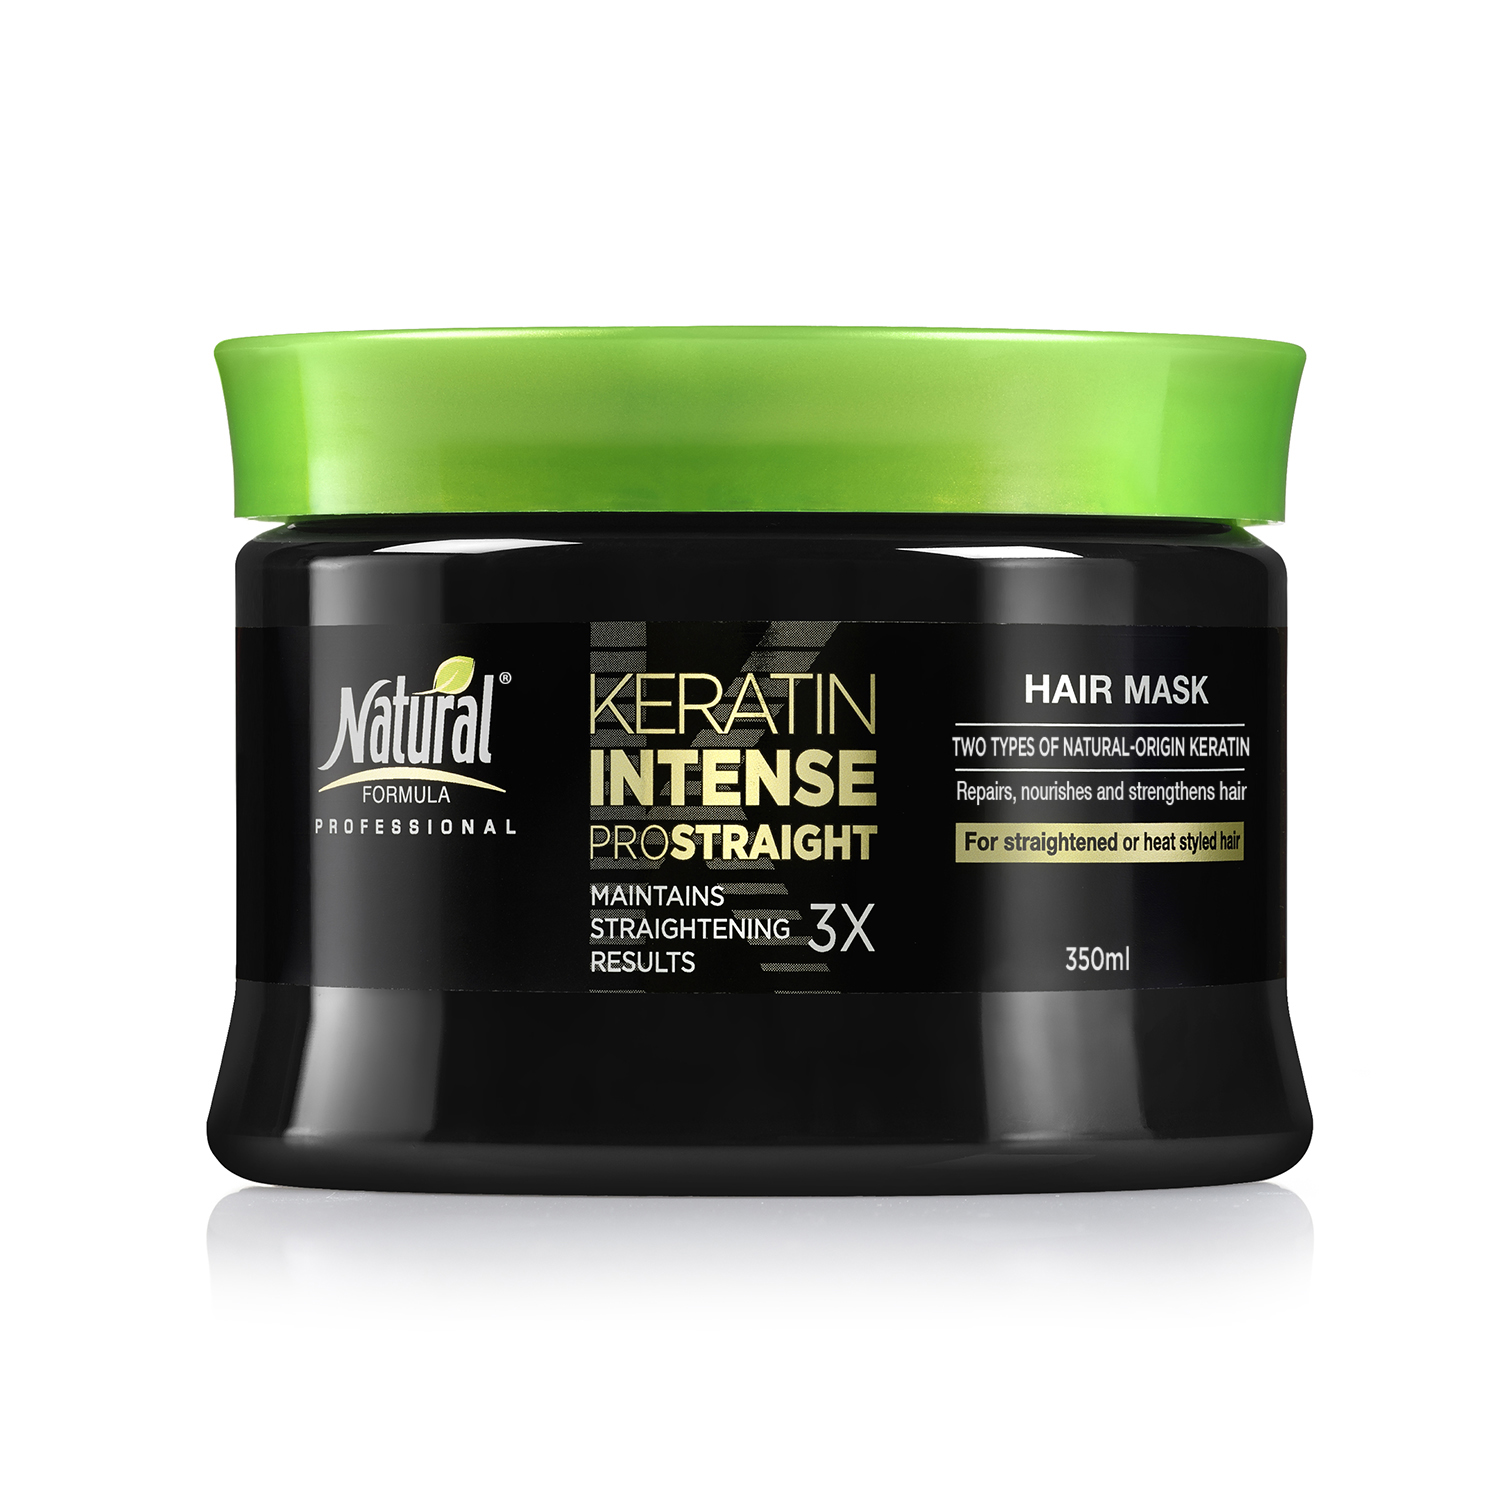 Keratin Intense Hair Mask